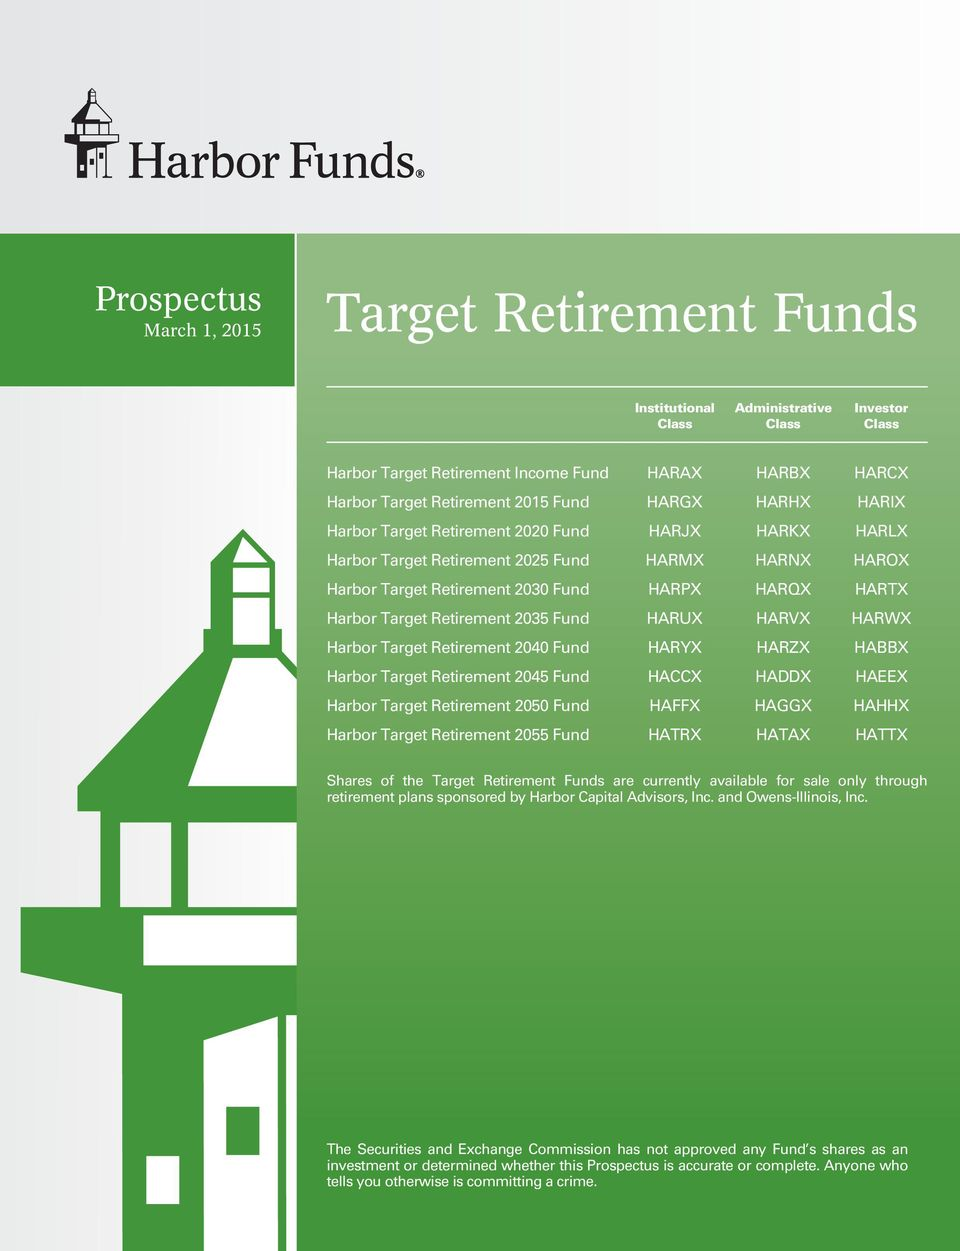 Retirement 2035 Fund HARUX HARVX HARWX Harbor Target Retirement 2040 Fund HARYX HARZX HABBX Harbor Target Retirement 2045 Fund HACCX HADDX HAEEX Harbor Target Retirement 2050 Fund HAFFX HAGGX HAHHX